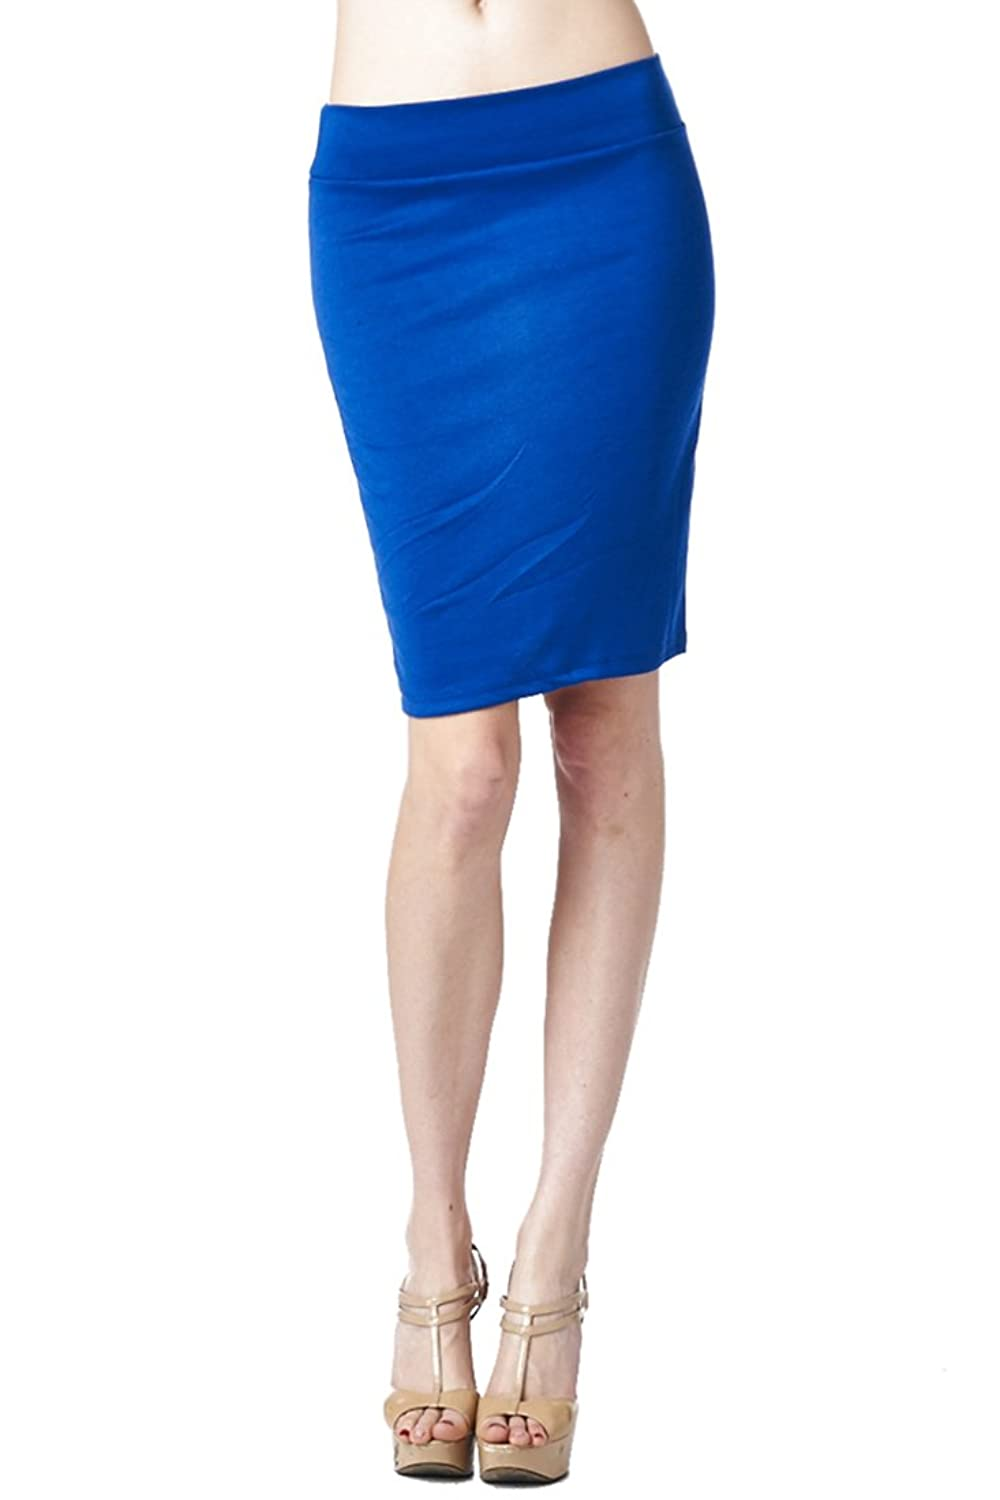 82 Days Women'S Casual To Office Wear Above Knee Pencil Skirt - Solid & Prints